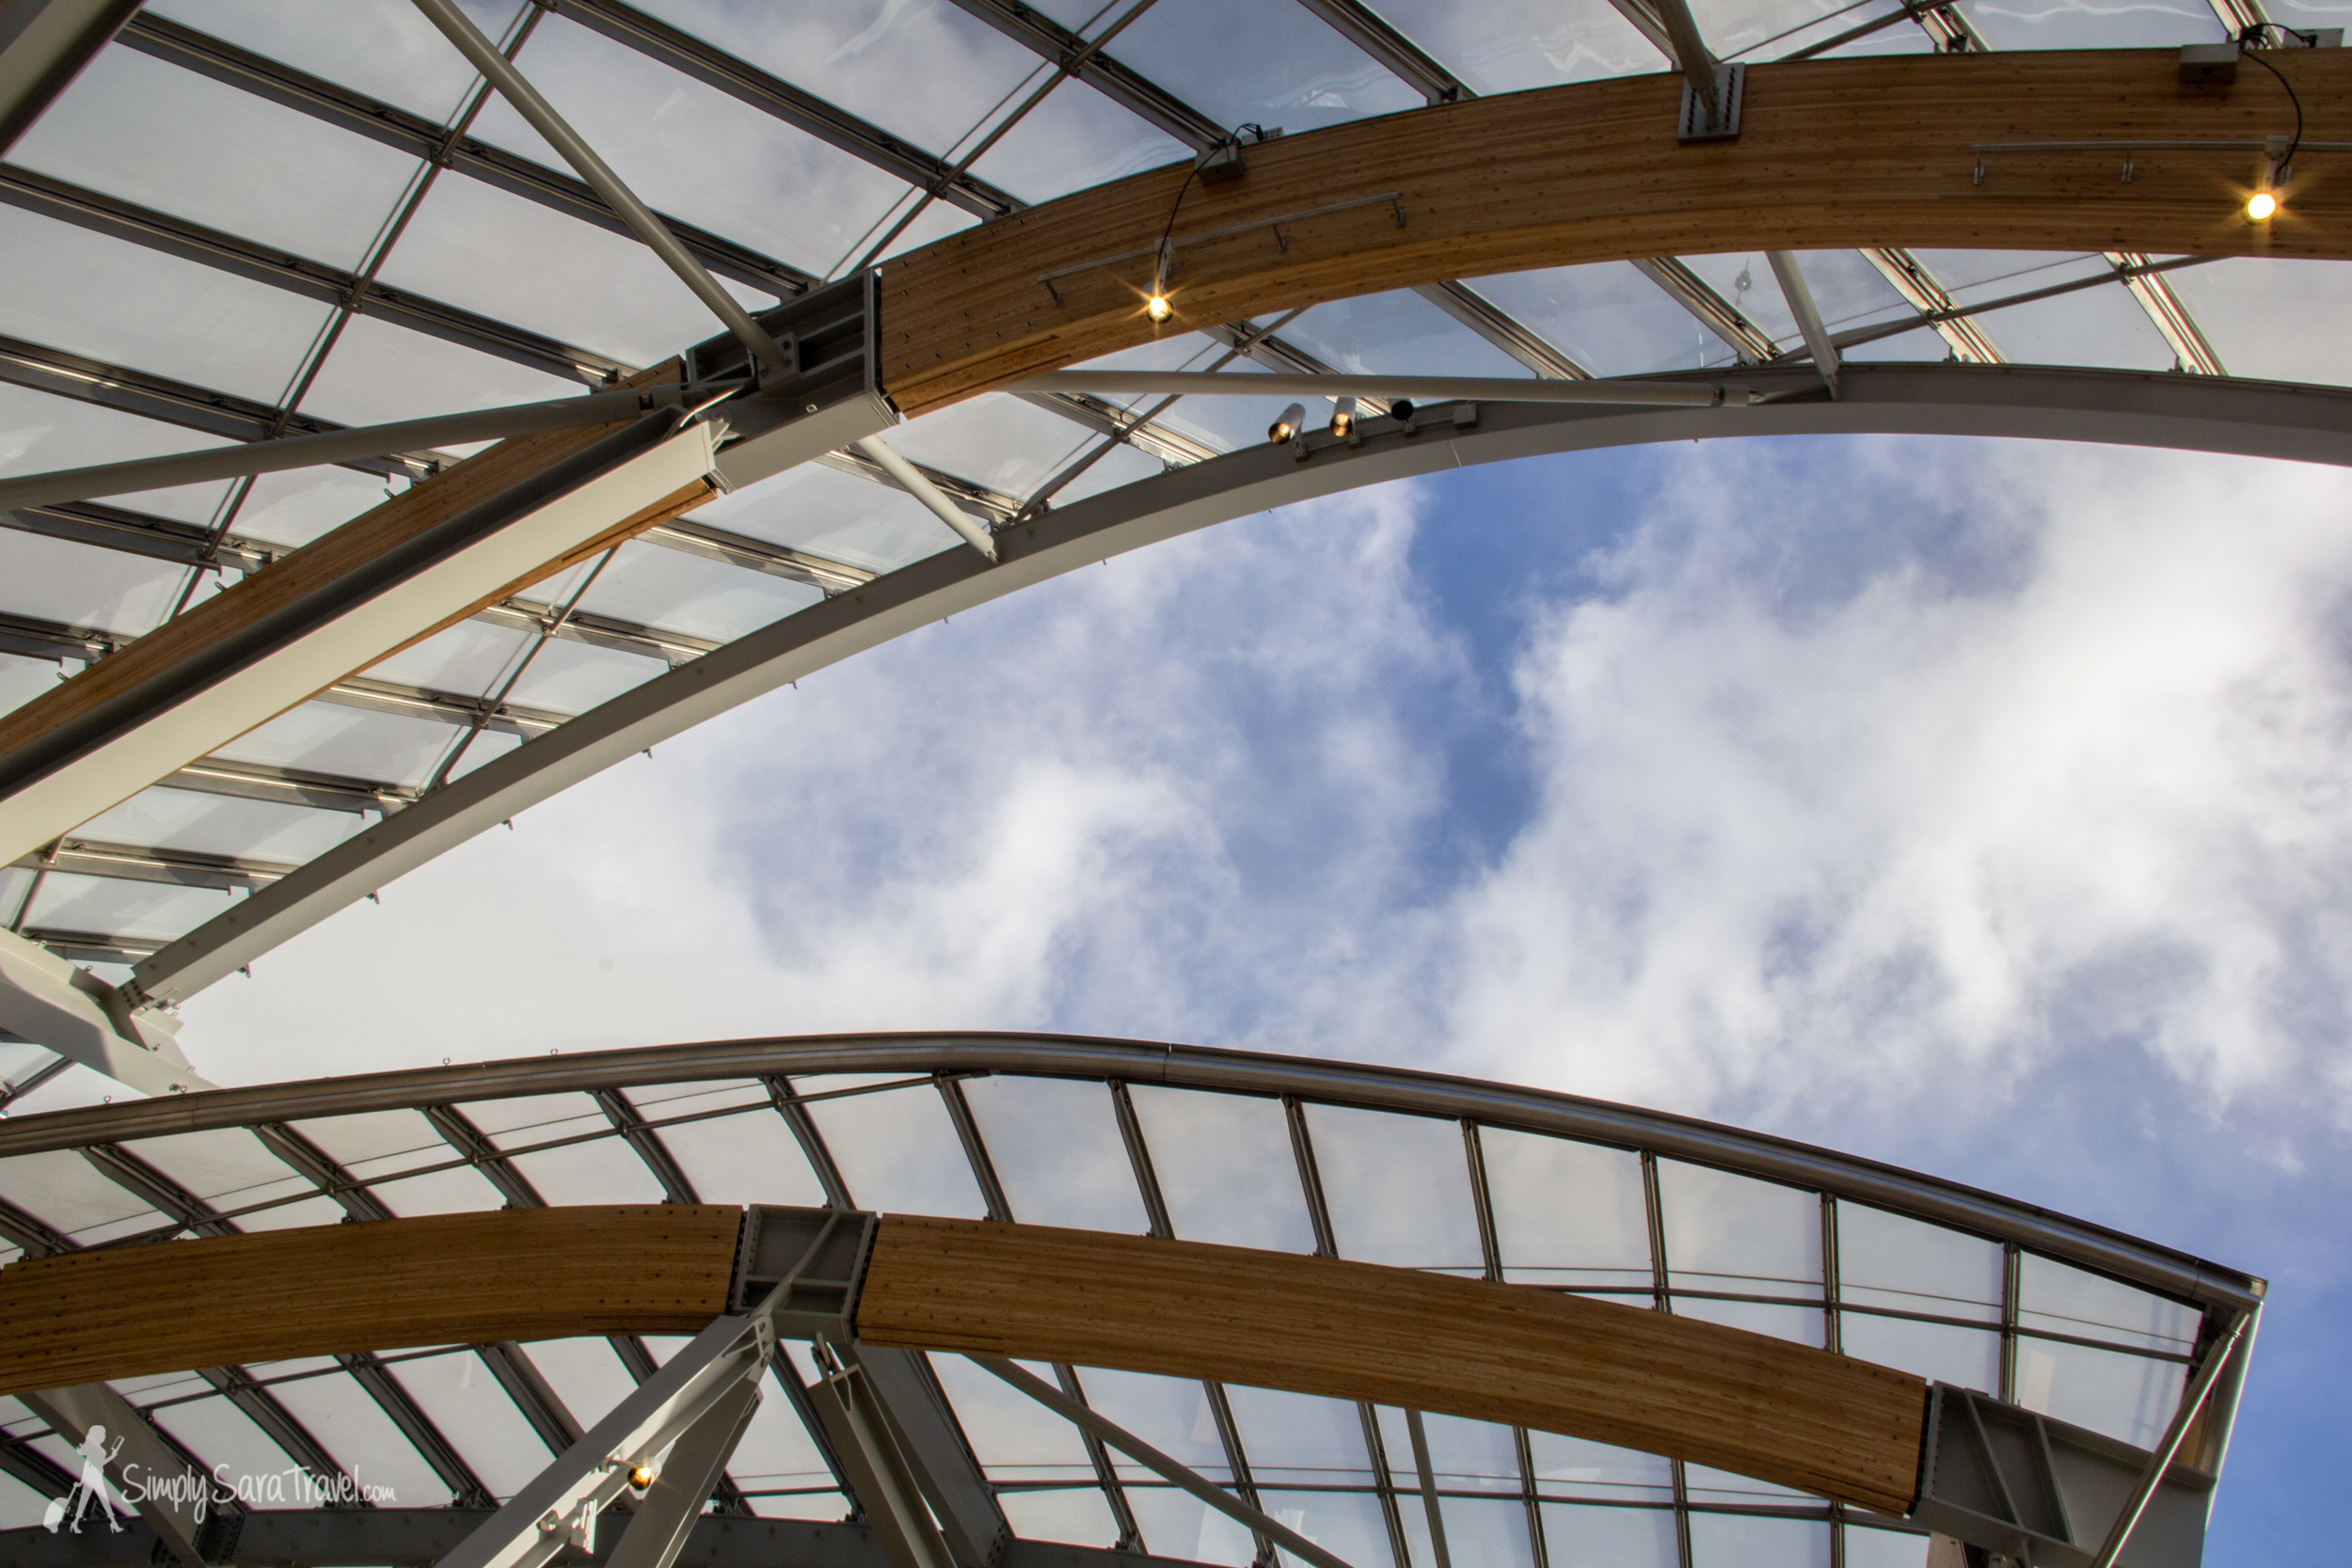 Terrace of Fondation Louis Vuitton and blue skies with clouds in Paris, France